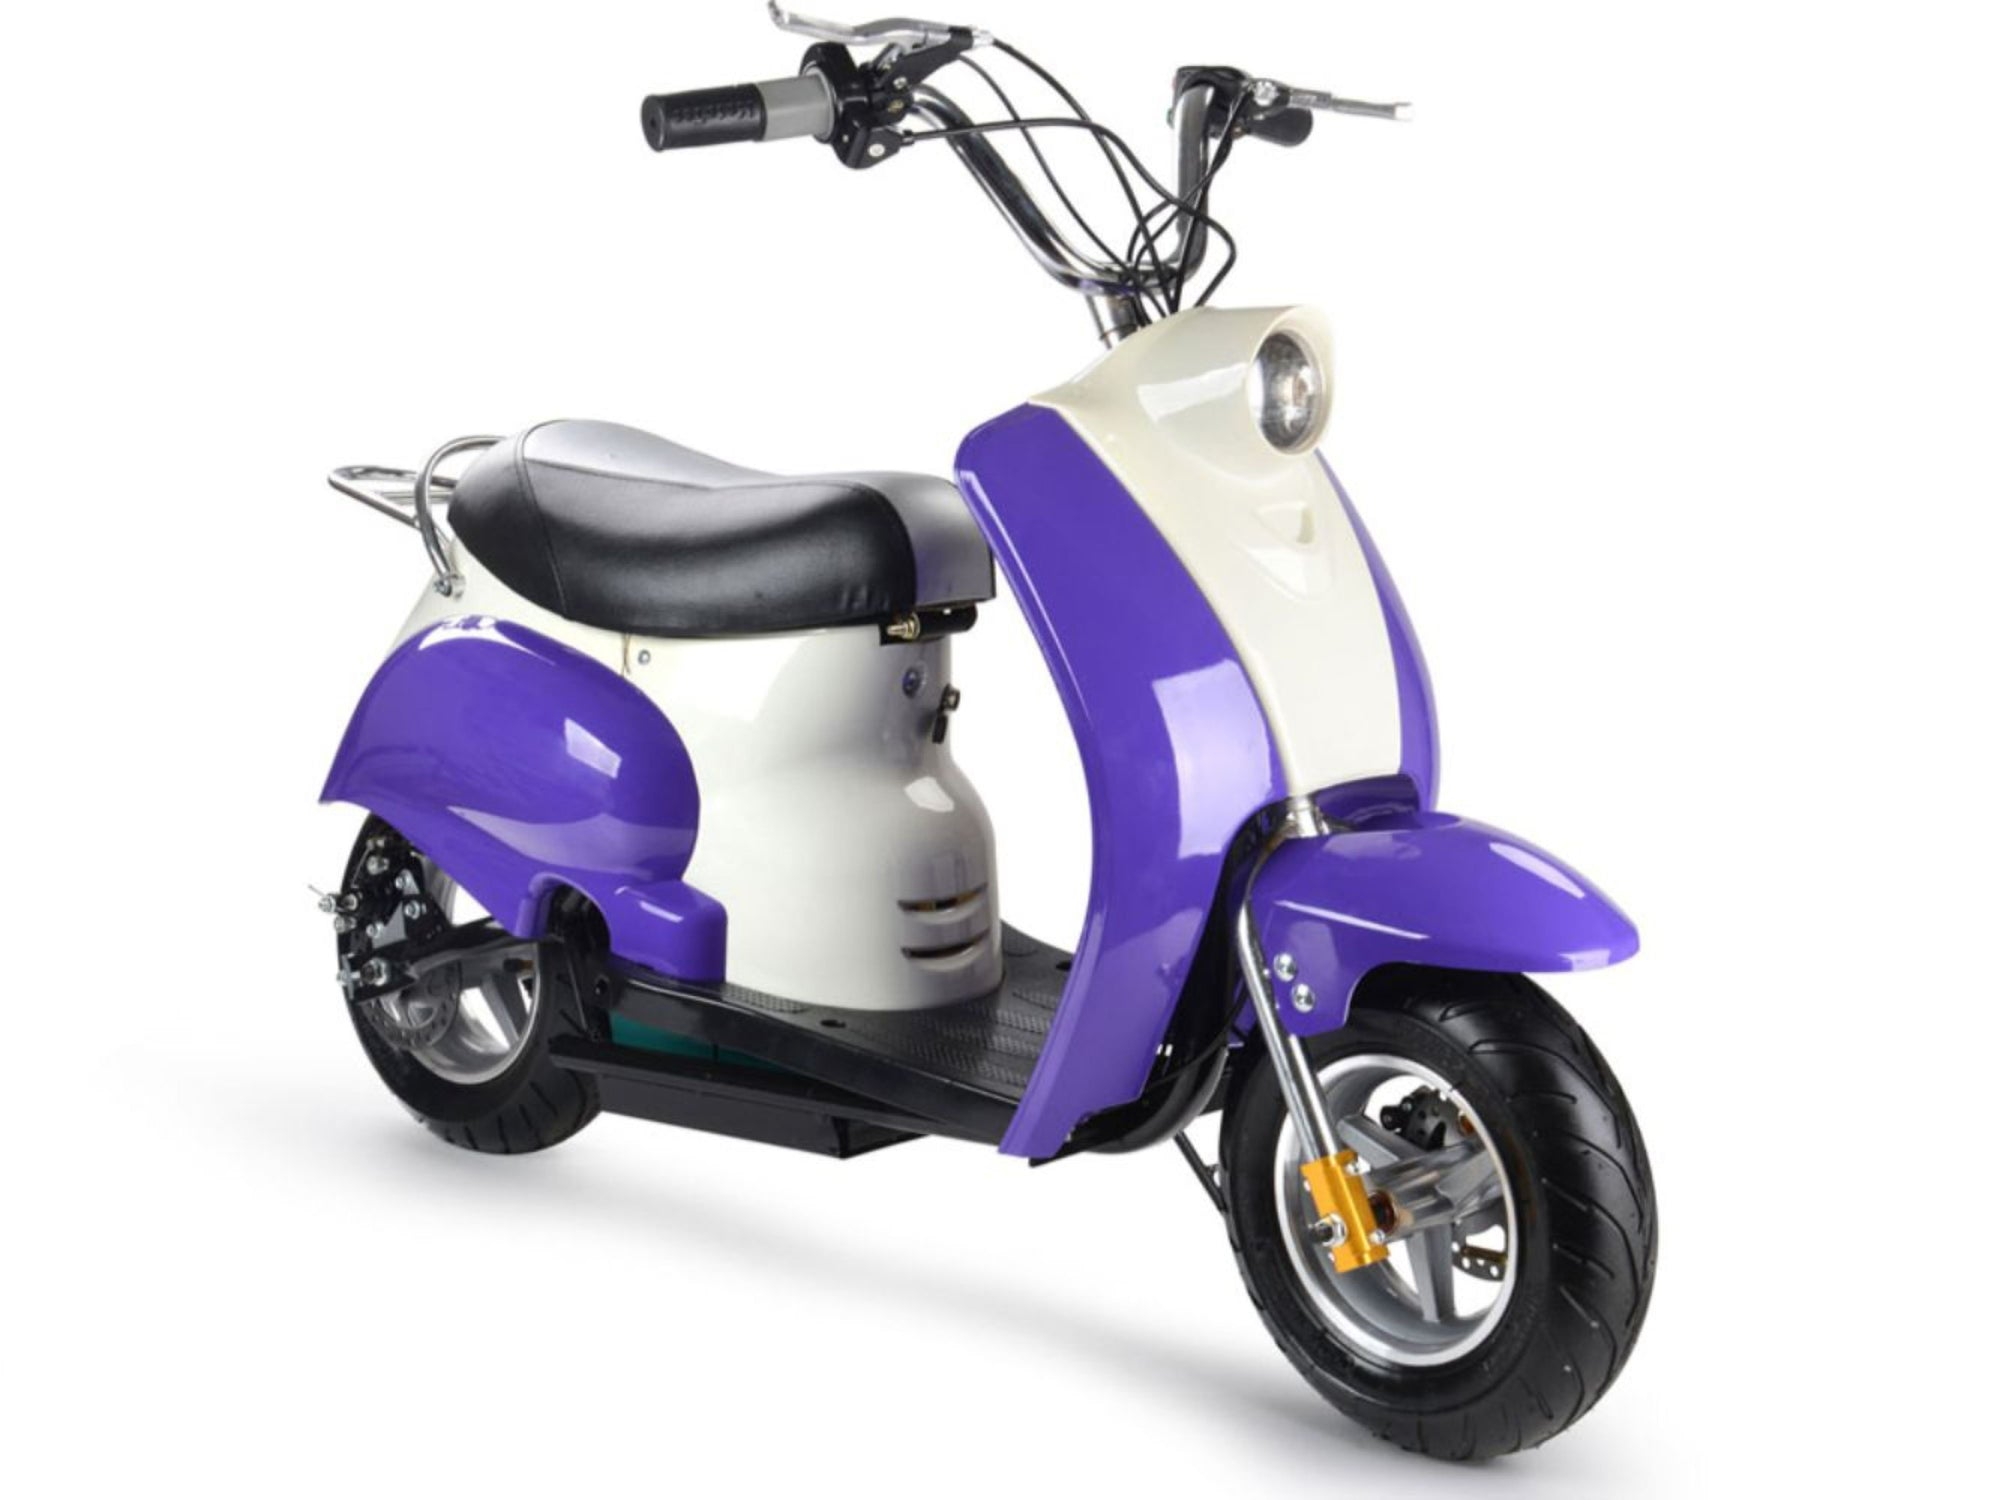 Electric Moped Purple 24v Battery Operated Moped MotoTec